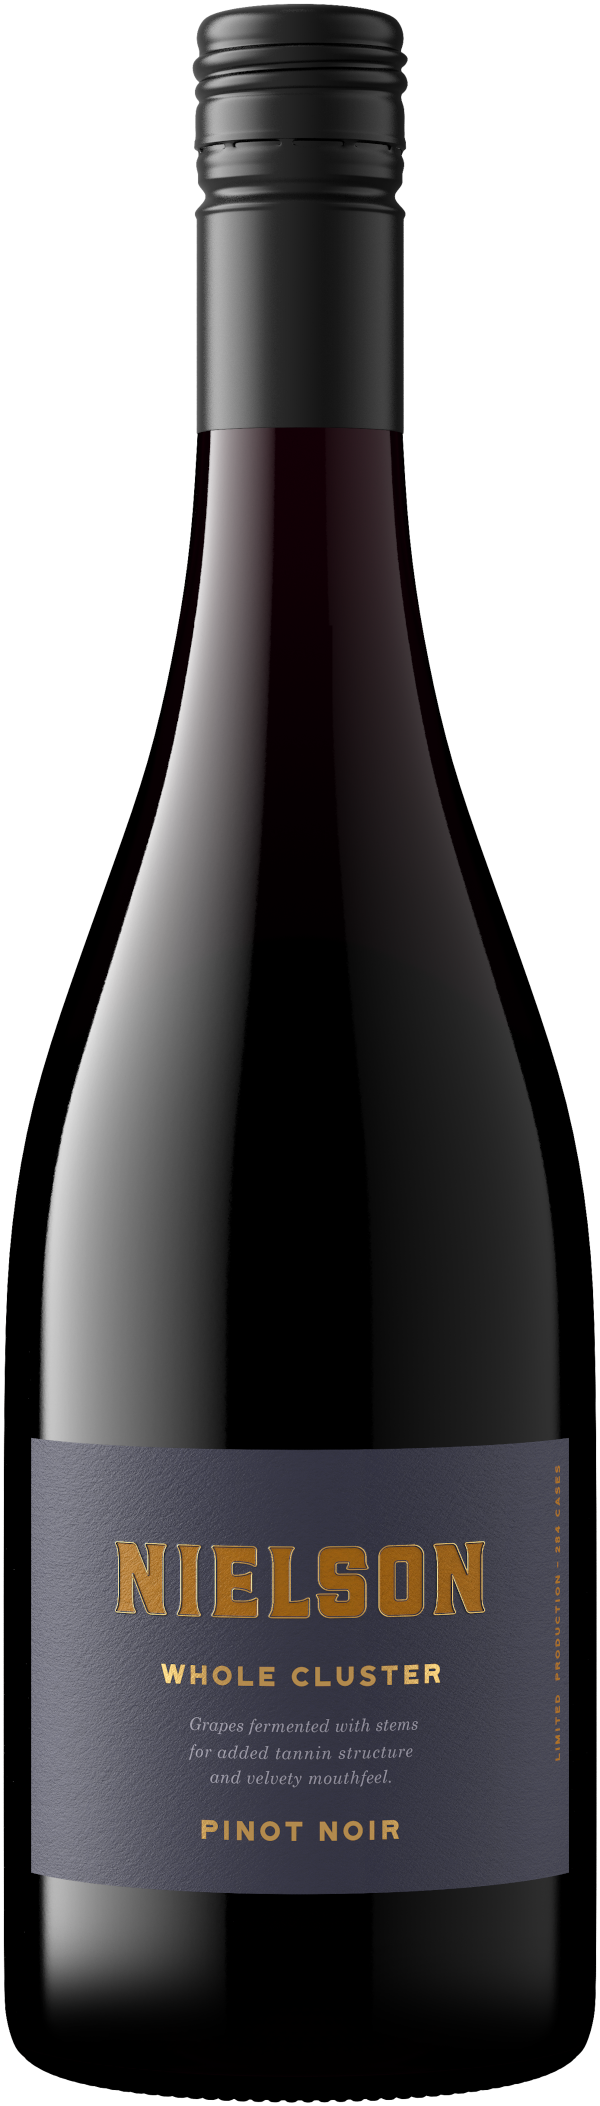 OUTSHINERY-Nielson-PinotNoir-WholeCluster-NV.png